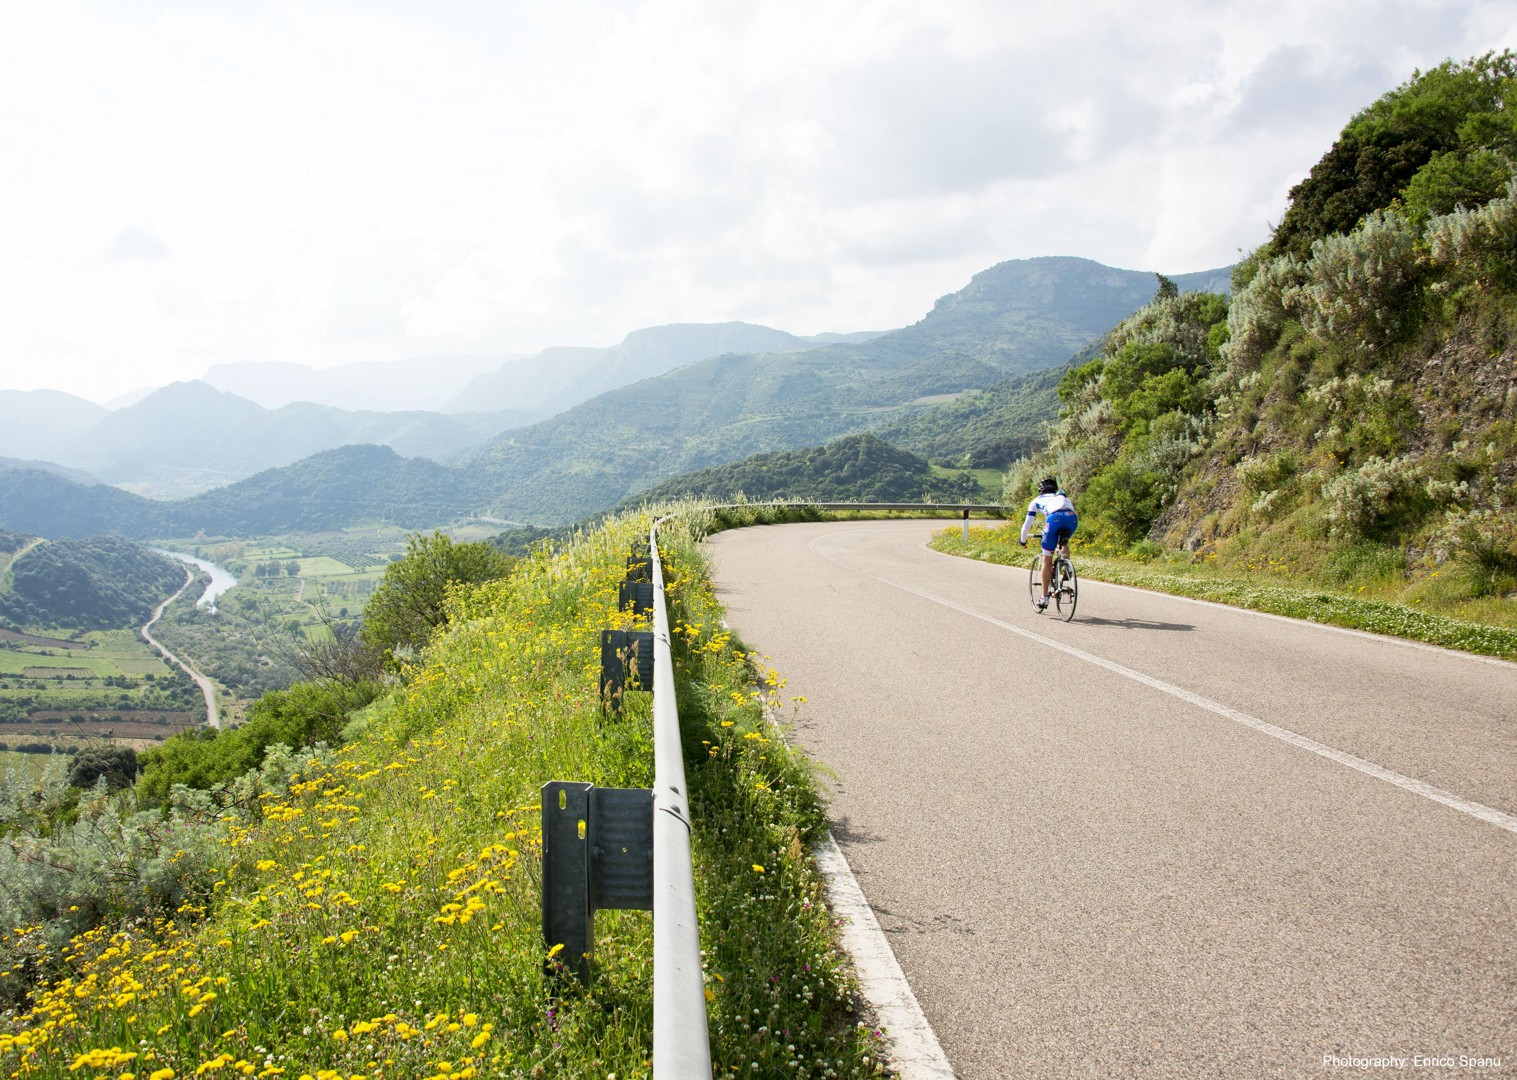 Sardinia-Sardinian-Mountains-Guided-Road-Cycling-Holiday-Mediterranean-gem.jpg - Italy - Sardinia - Mountain Explorer - Guided Road Cycling Holiday - Road Cycling